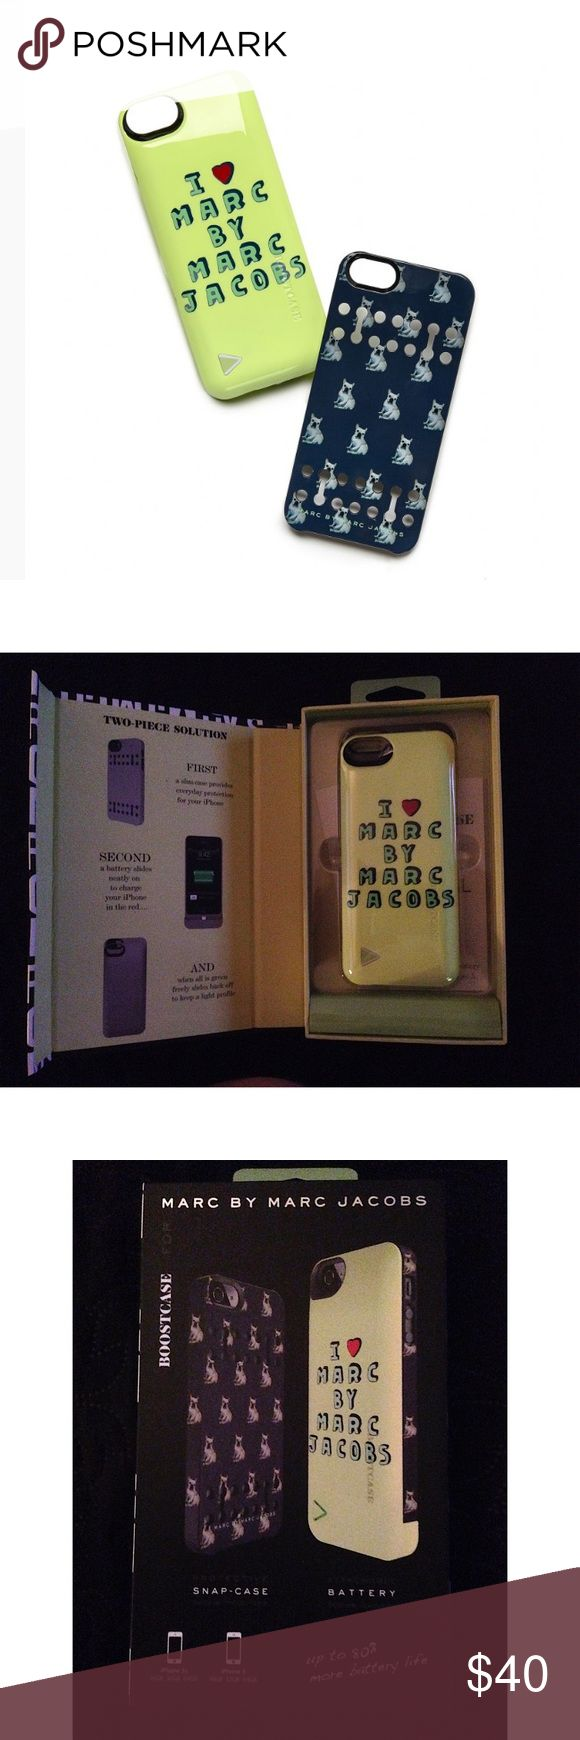 🎃FALL SALE🎃 Marc Jacobs iPhone5/5s boost case Marc by Marc Jacobs iPhone5 / 5s Boost case: French BullDog iPhone 5/ 5s case  Gives you 80% more battery power.   Brand new in retail packaging.   Case charges your iPhone and the battery case simultaneously. You don't need your original iPhone cable to charge your phone! Marc by Marc Jacobs Other